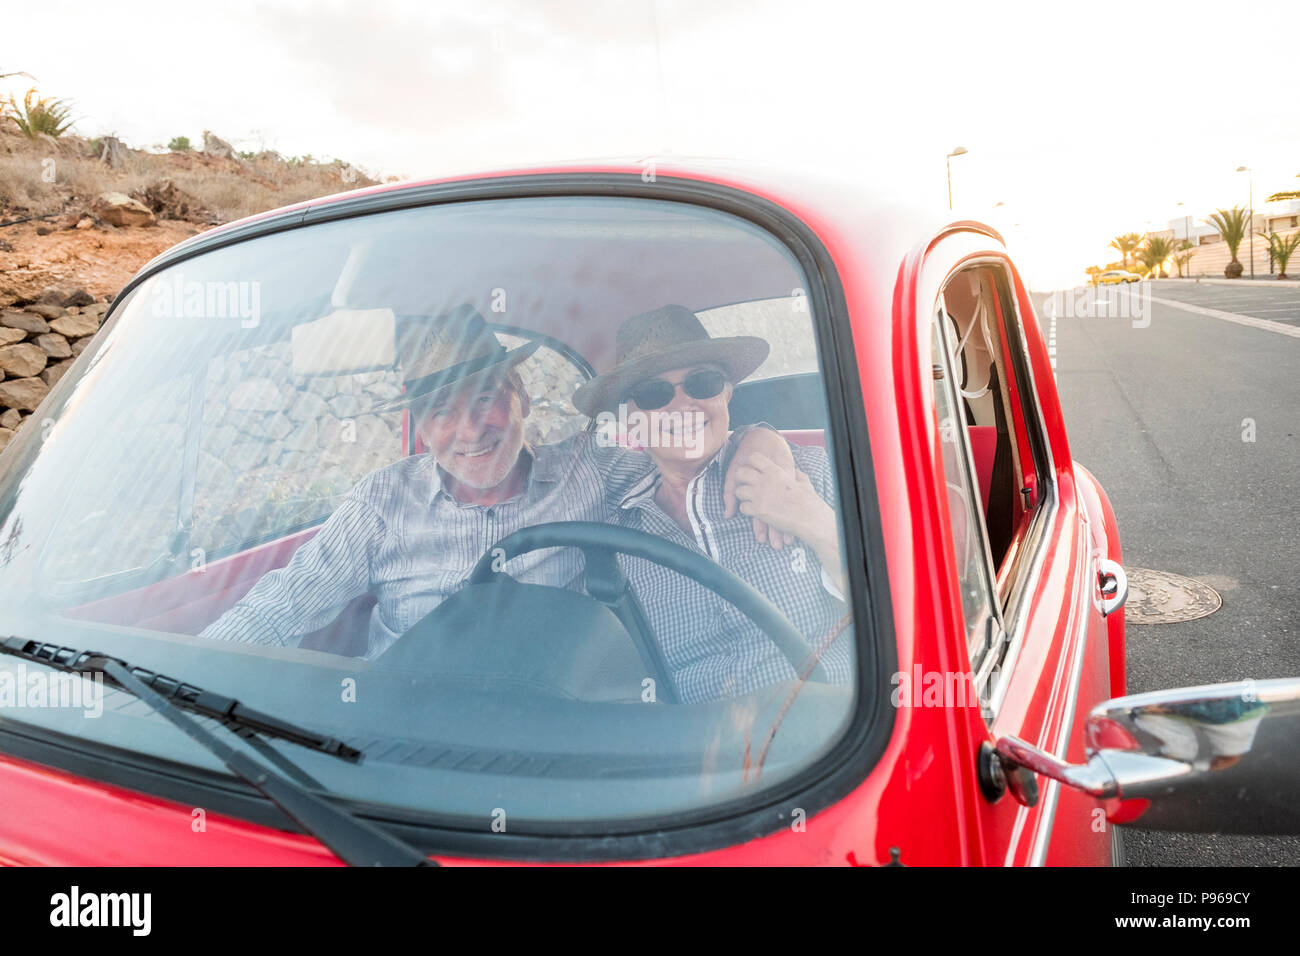 nice adult couple hug and love inside a red old vintage car parked on the road. smiles and have fun traveling together. happiness and lifestyle for ni - Stock Image